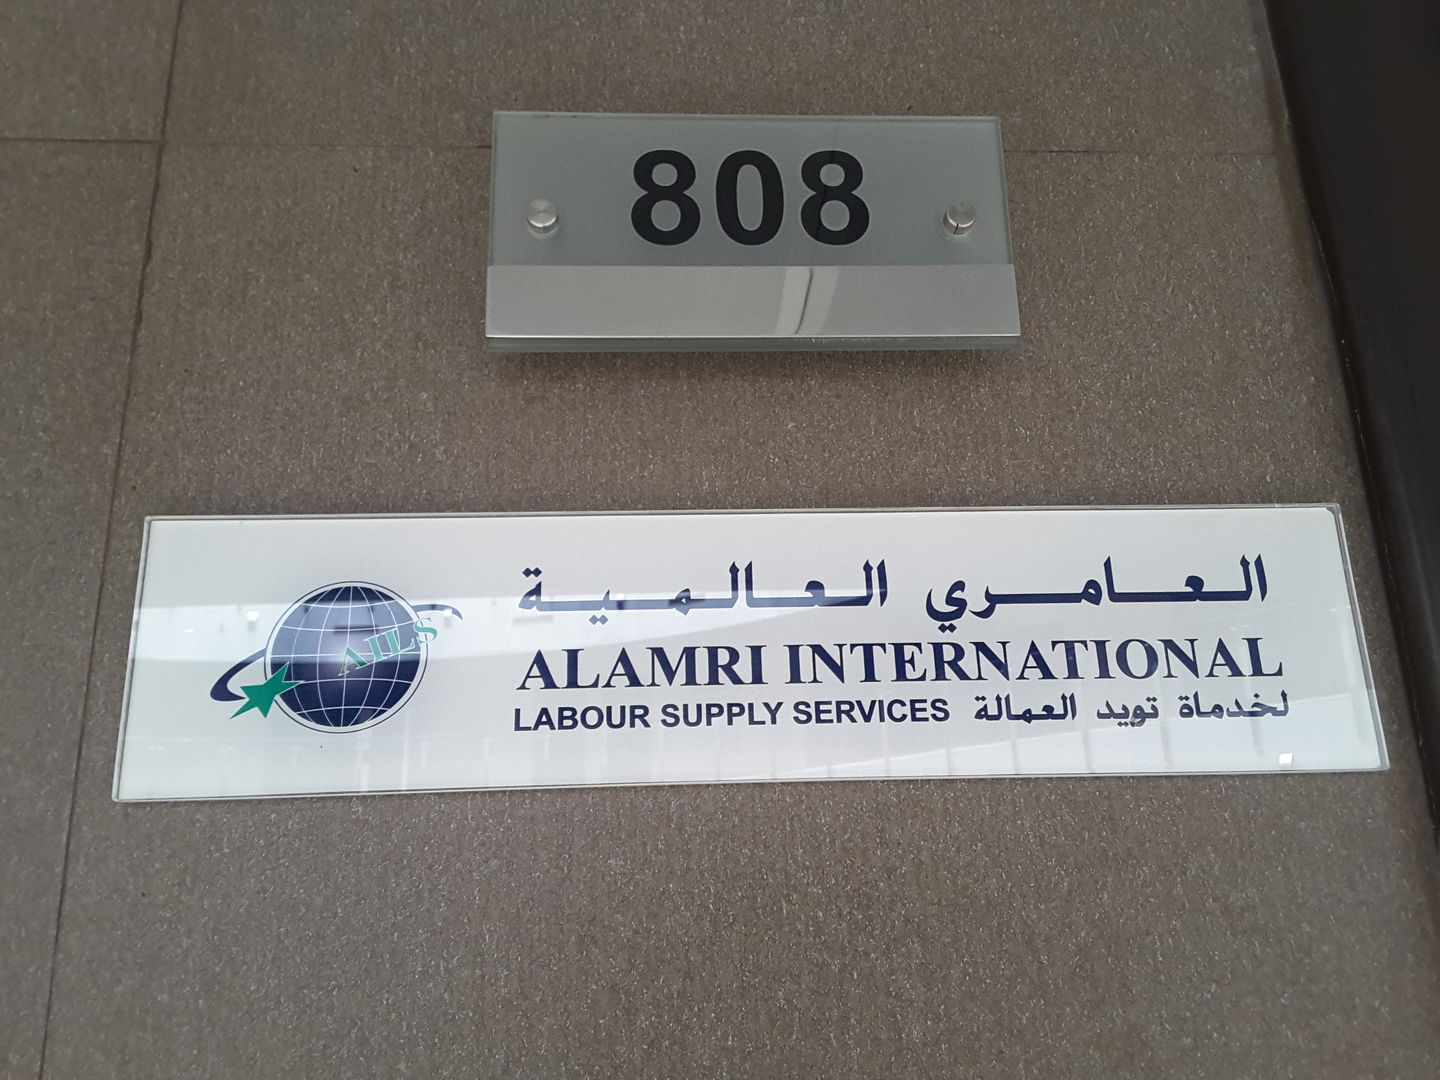 HiDubai-business-al-amri-international-labour-supply-services-b2b-services-human-resource-management-al-barsha-1-dubai-2